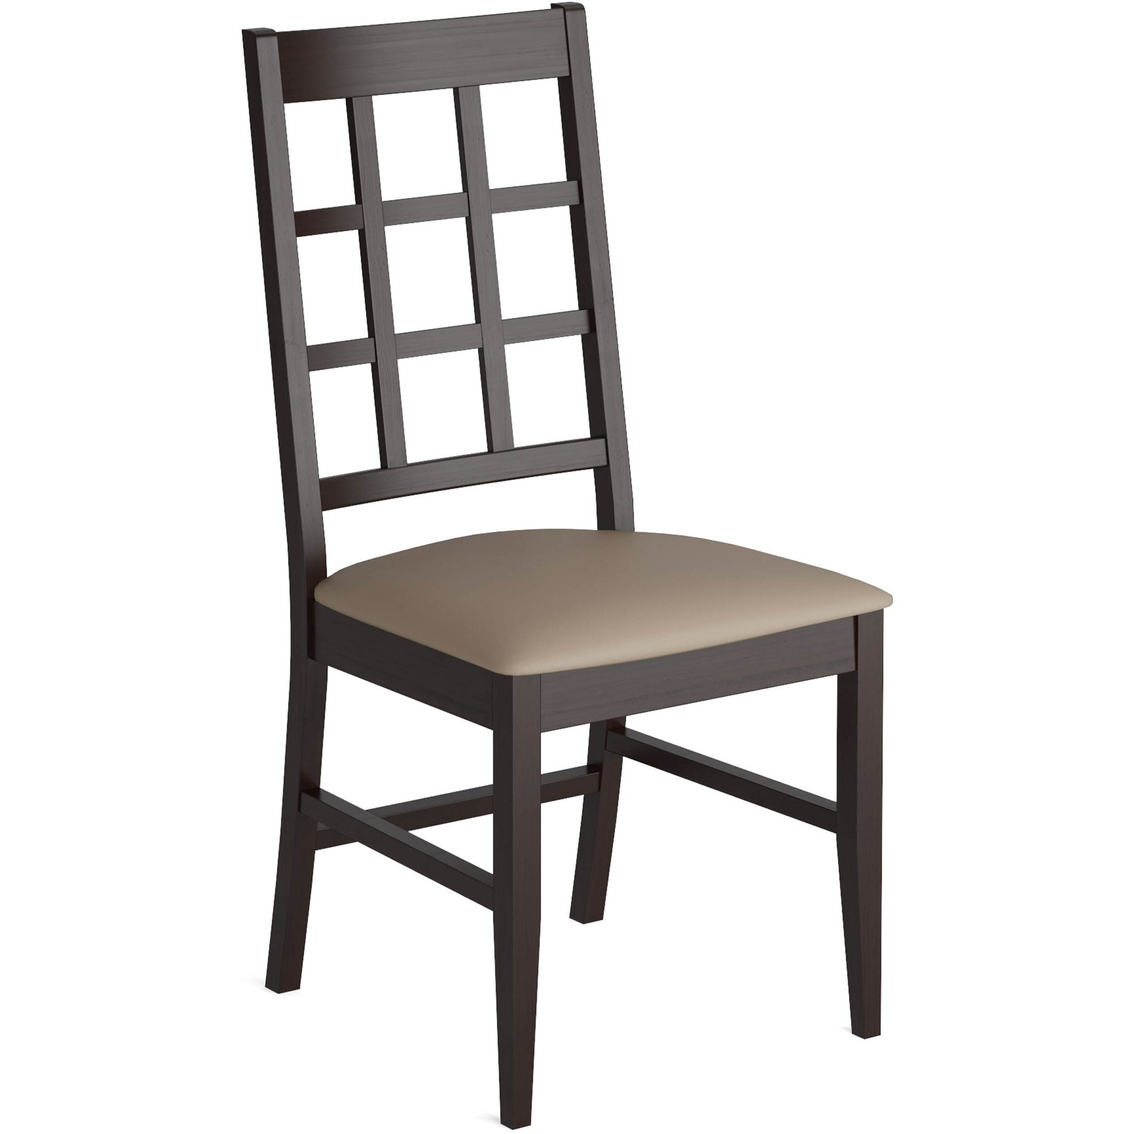 Most Current Corliving Atwood Dining Chairs With Leatherette Seat 2 Pk Inside Atwood Transitional Square Dining Tables (View 21 of 30)